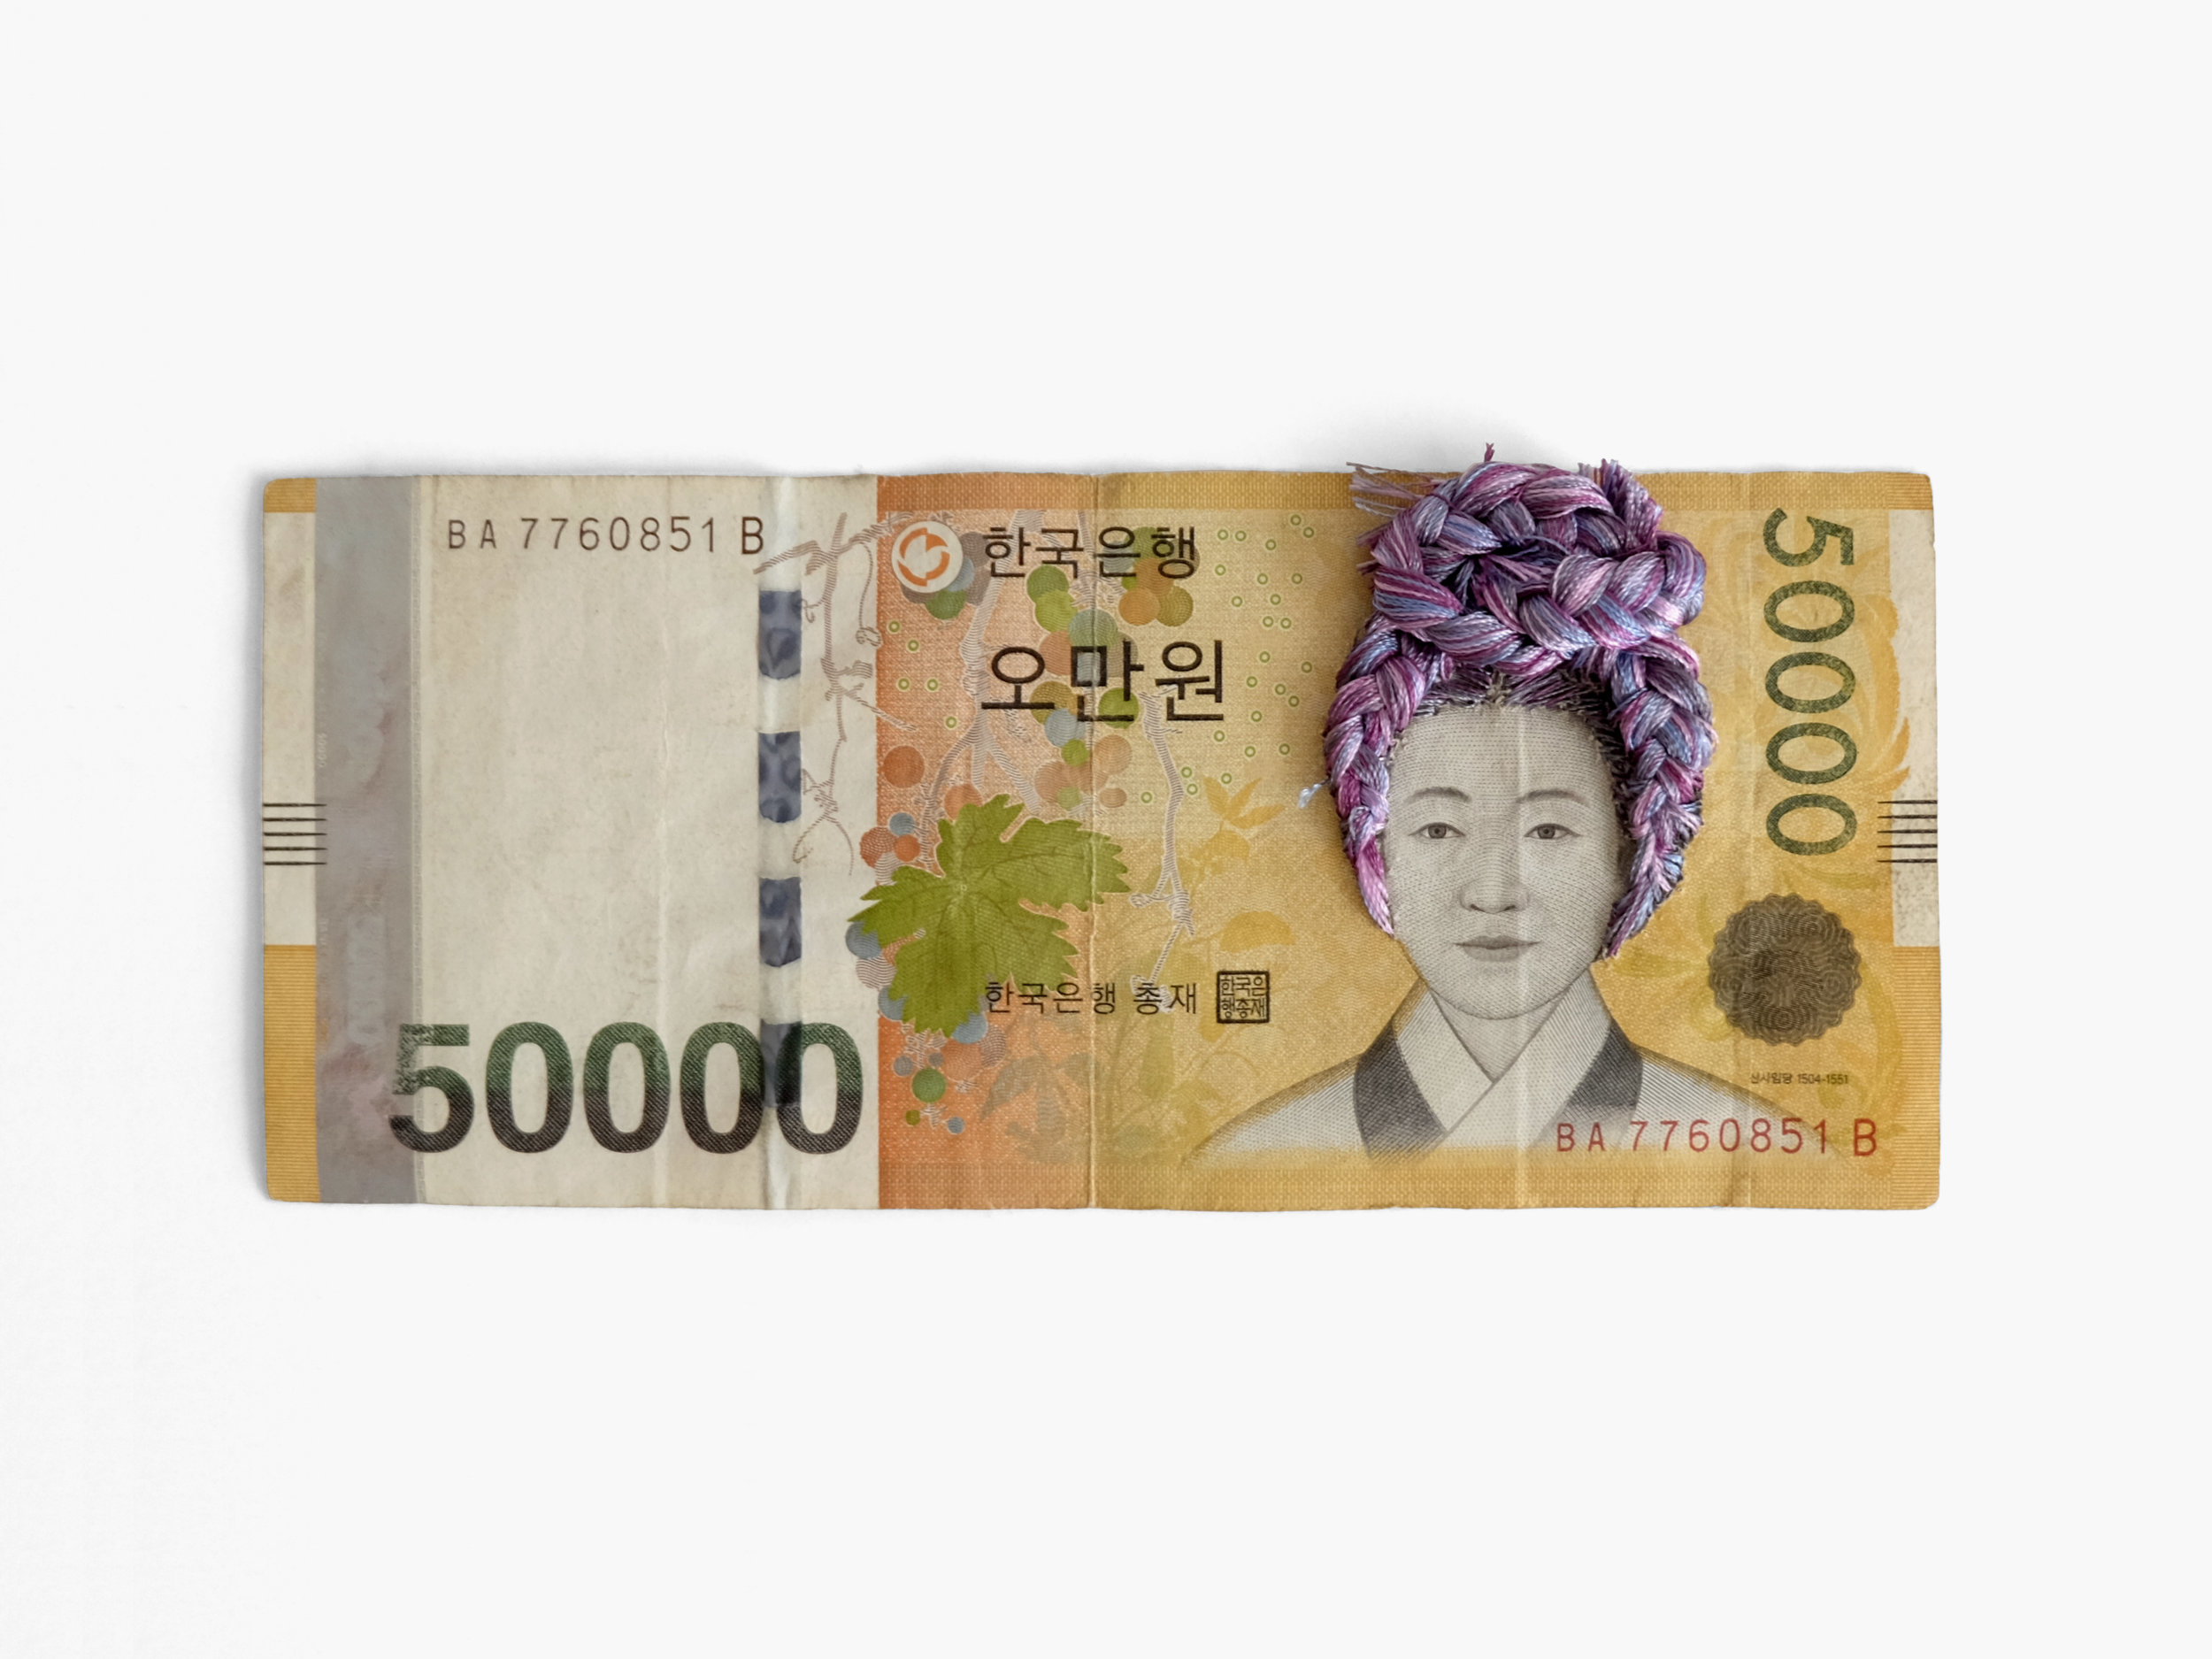 Shin  Korean banknote, embroidery floss 6 × 2.675 in 2017